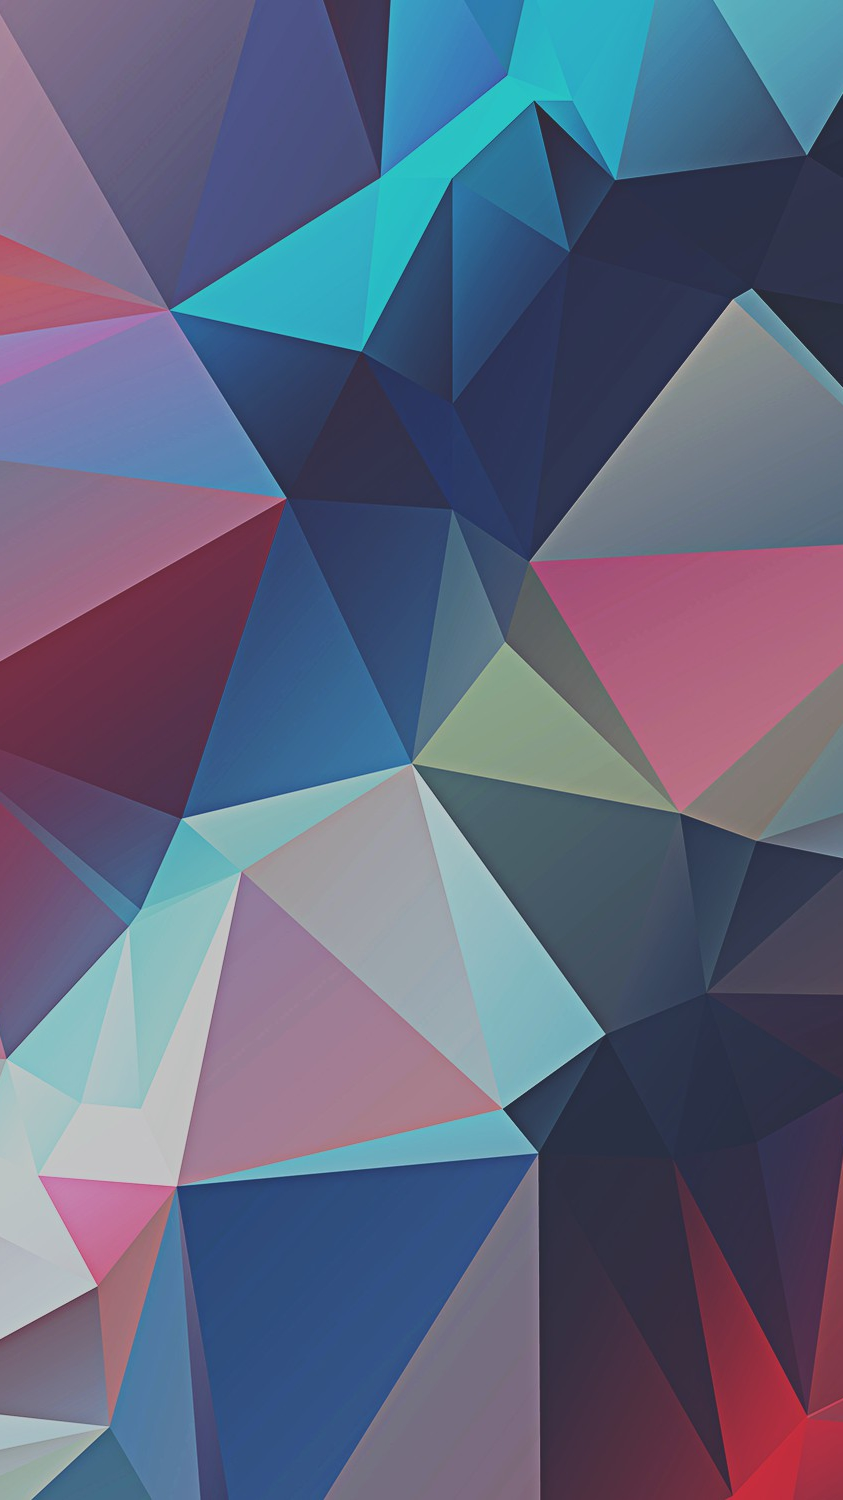 Cool Quotes Wallpapers For Desktop Low Poly Geometric Art Iphone Wallpaper Iphone Wallpapers